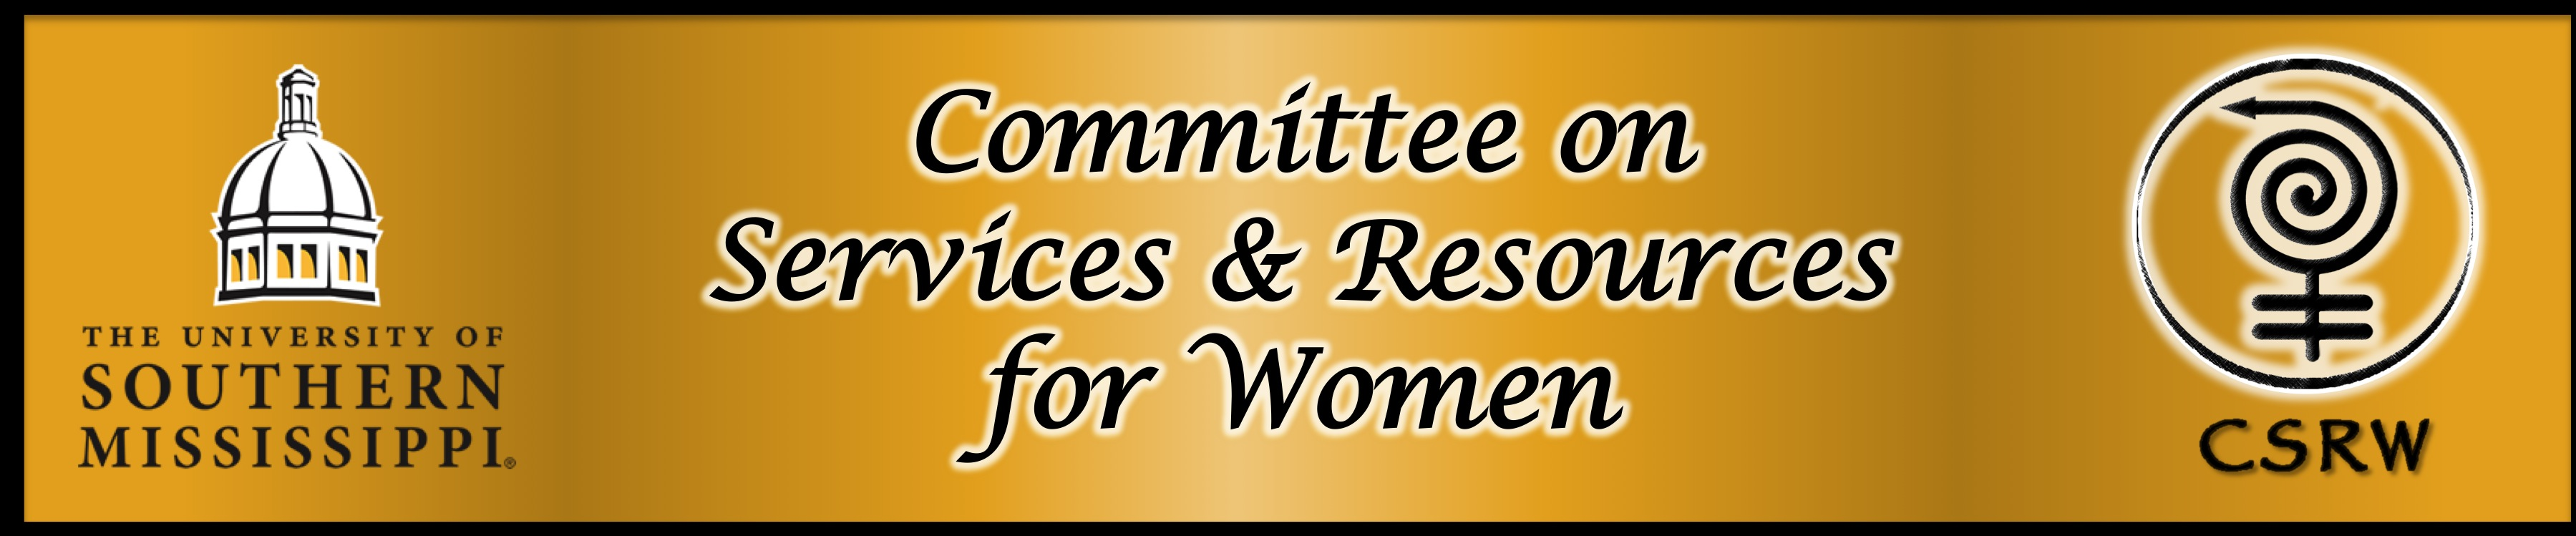 Committee on Services and Resources for Women